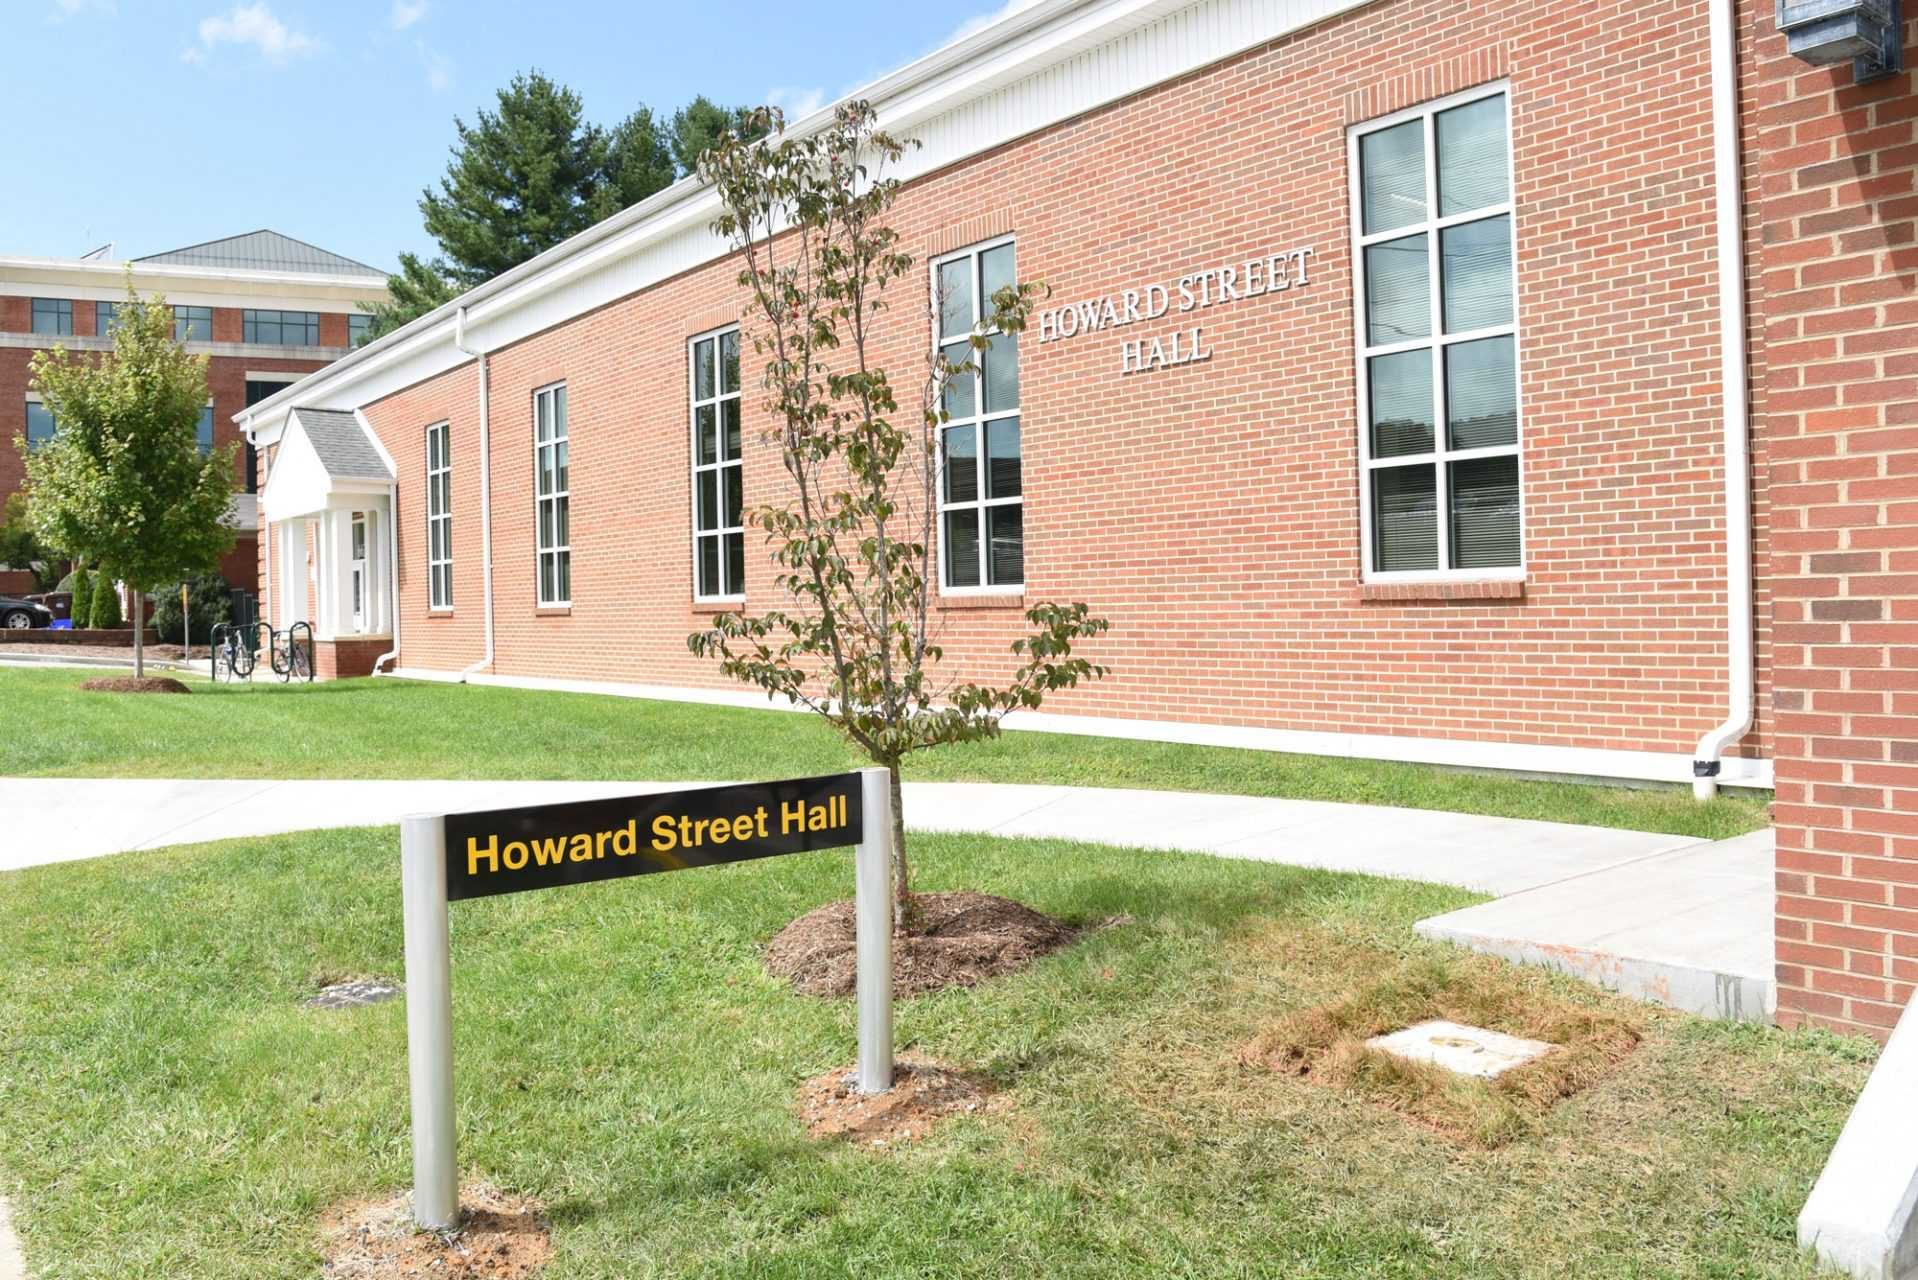 Howard Street Hall, located next to the College of Education building, was recently renovated and will hold classes for students.